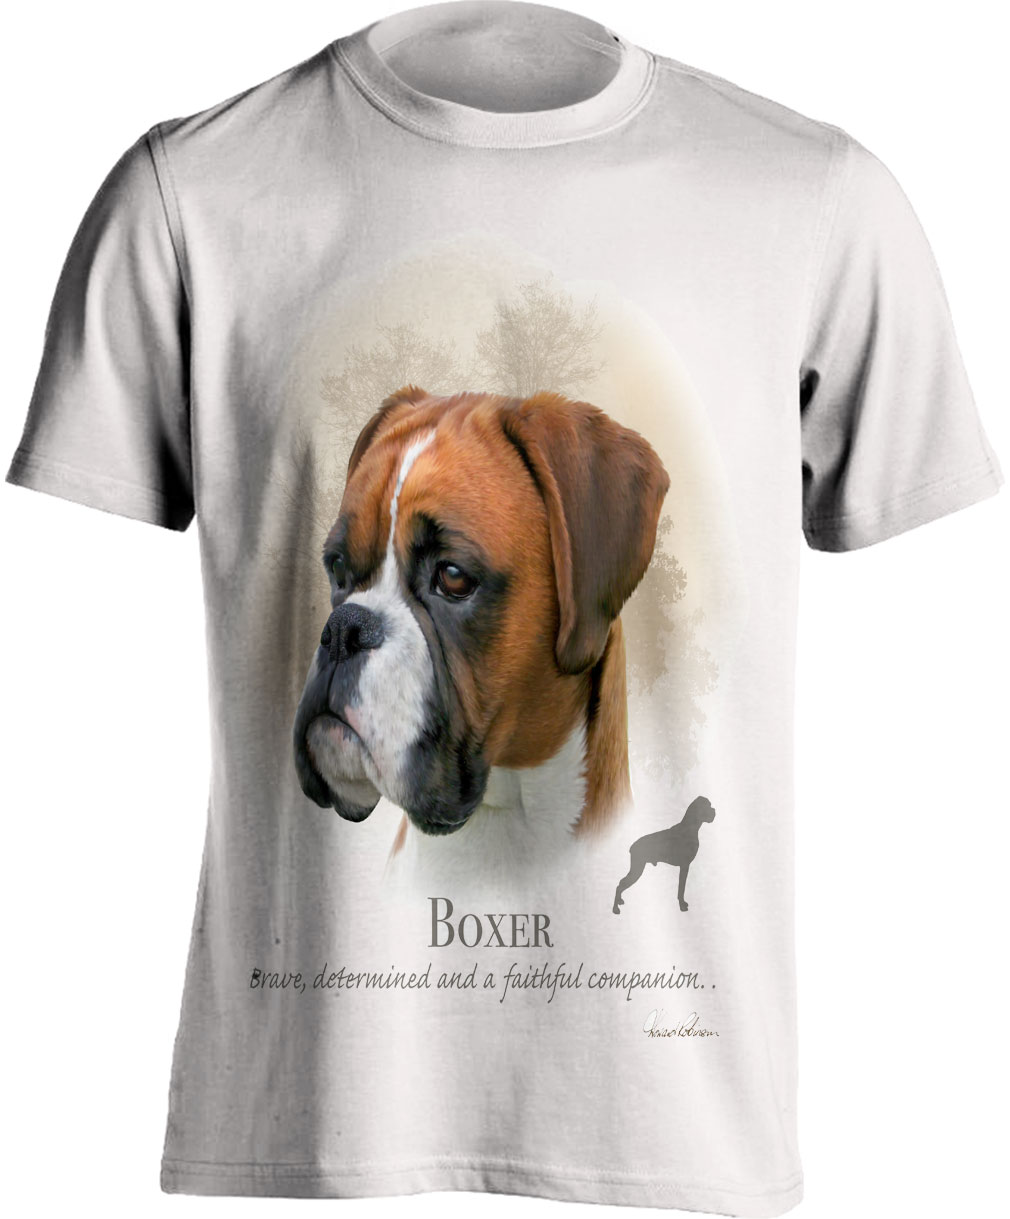 Boxer Dog T Shirt